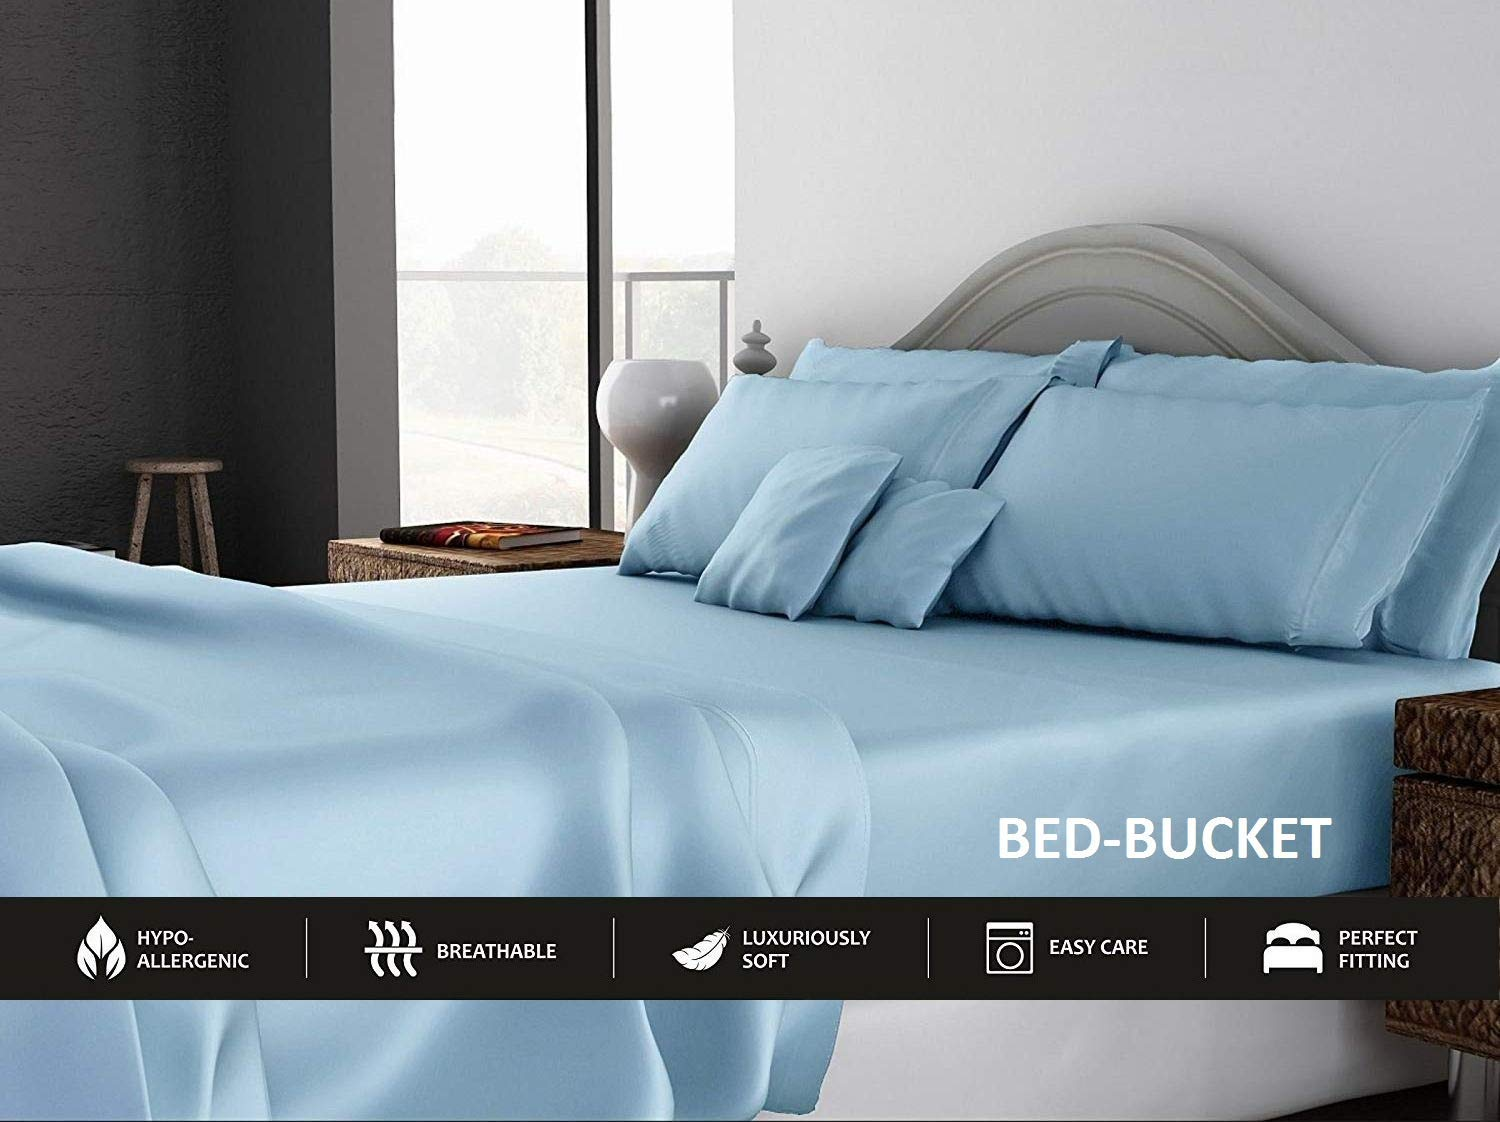 """Bed-Bucket 100% Natural Cotton 800-TC Hypoallergenic Design Wrinkle & Fade Resistant 60X75 inch Short Queen Size Sheet Set 4pcs with 12"""" Deep Pocket Fitted Sheet Light Blue Solid"""